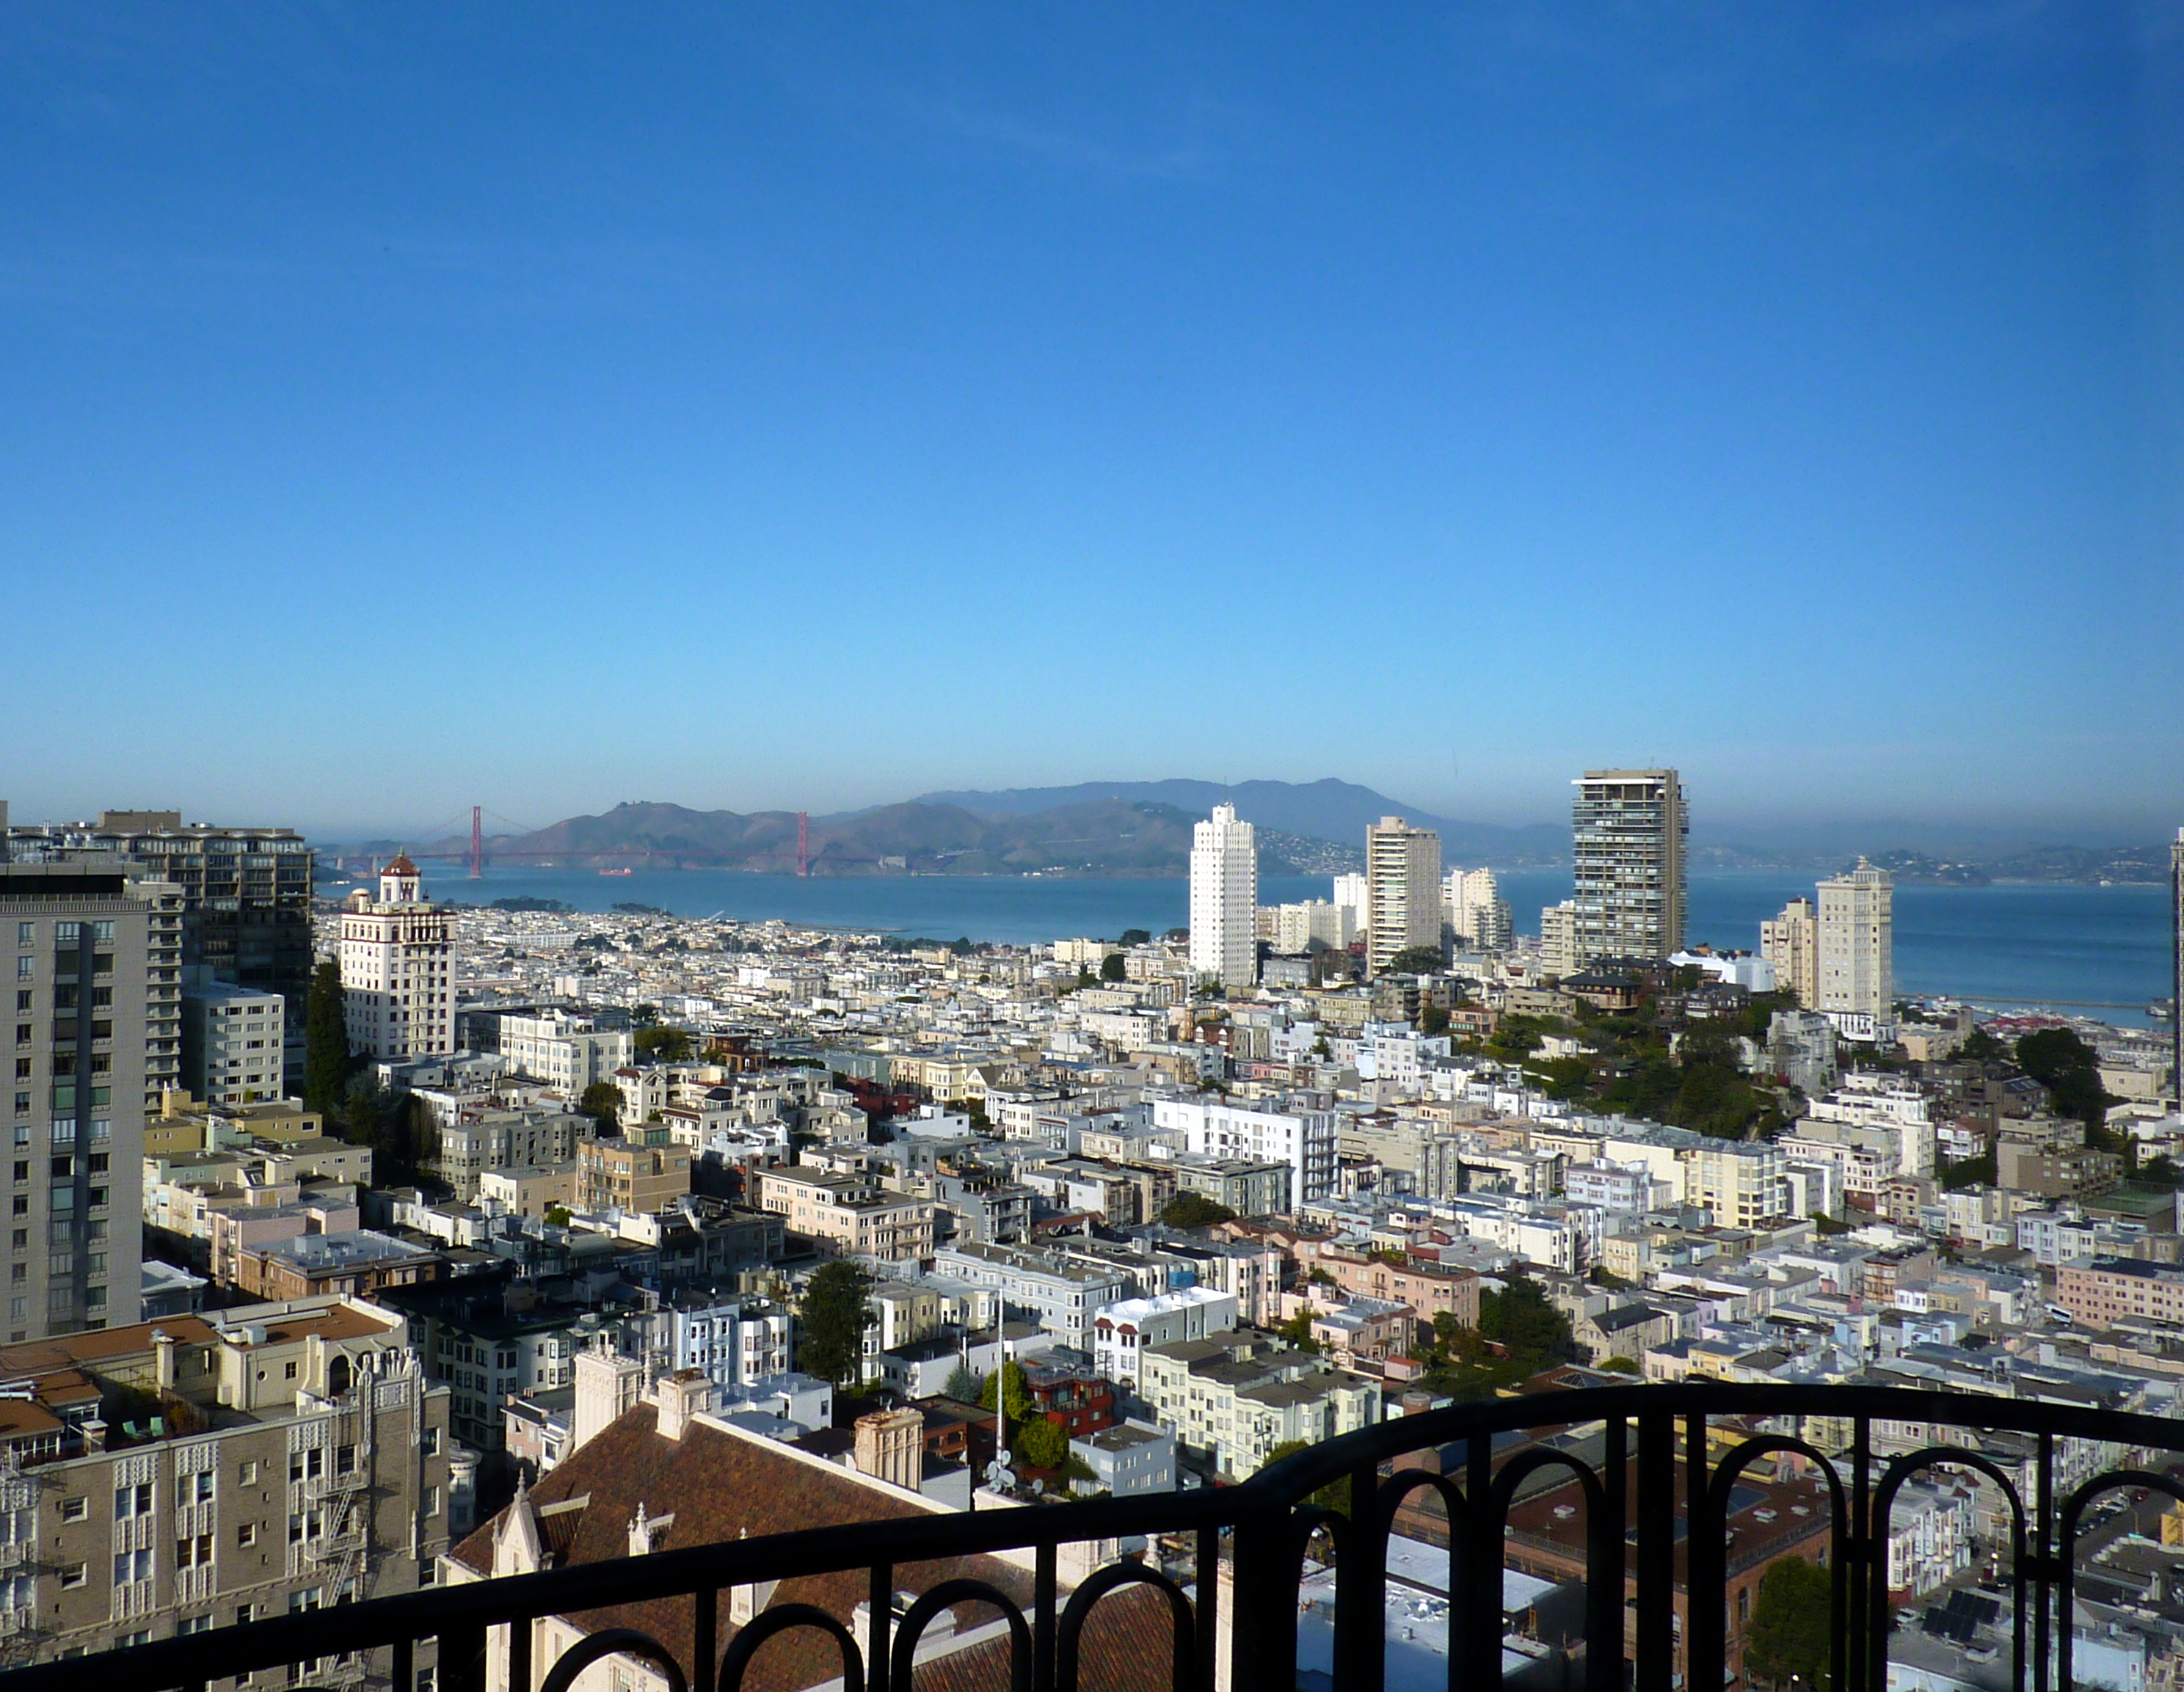 View of San Francisco from the top of the St. Francis Hotel in Union Square